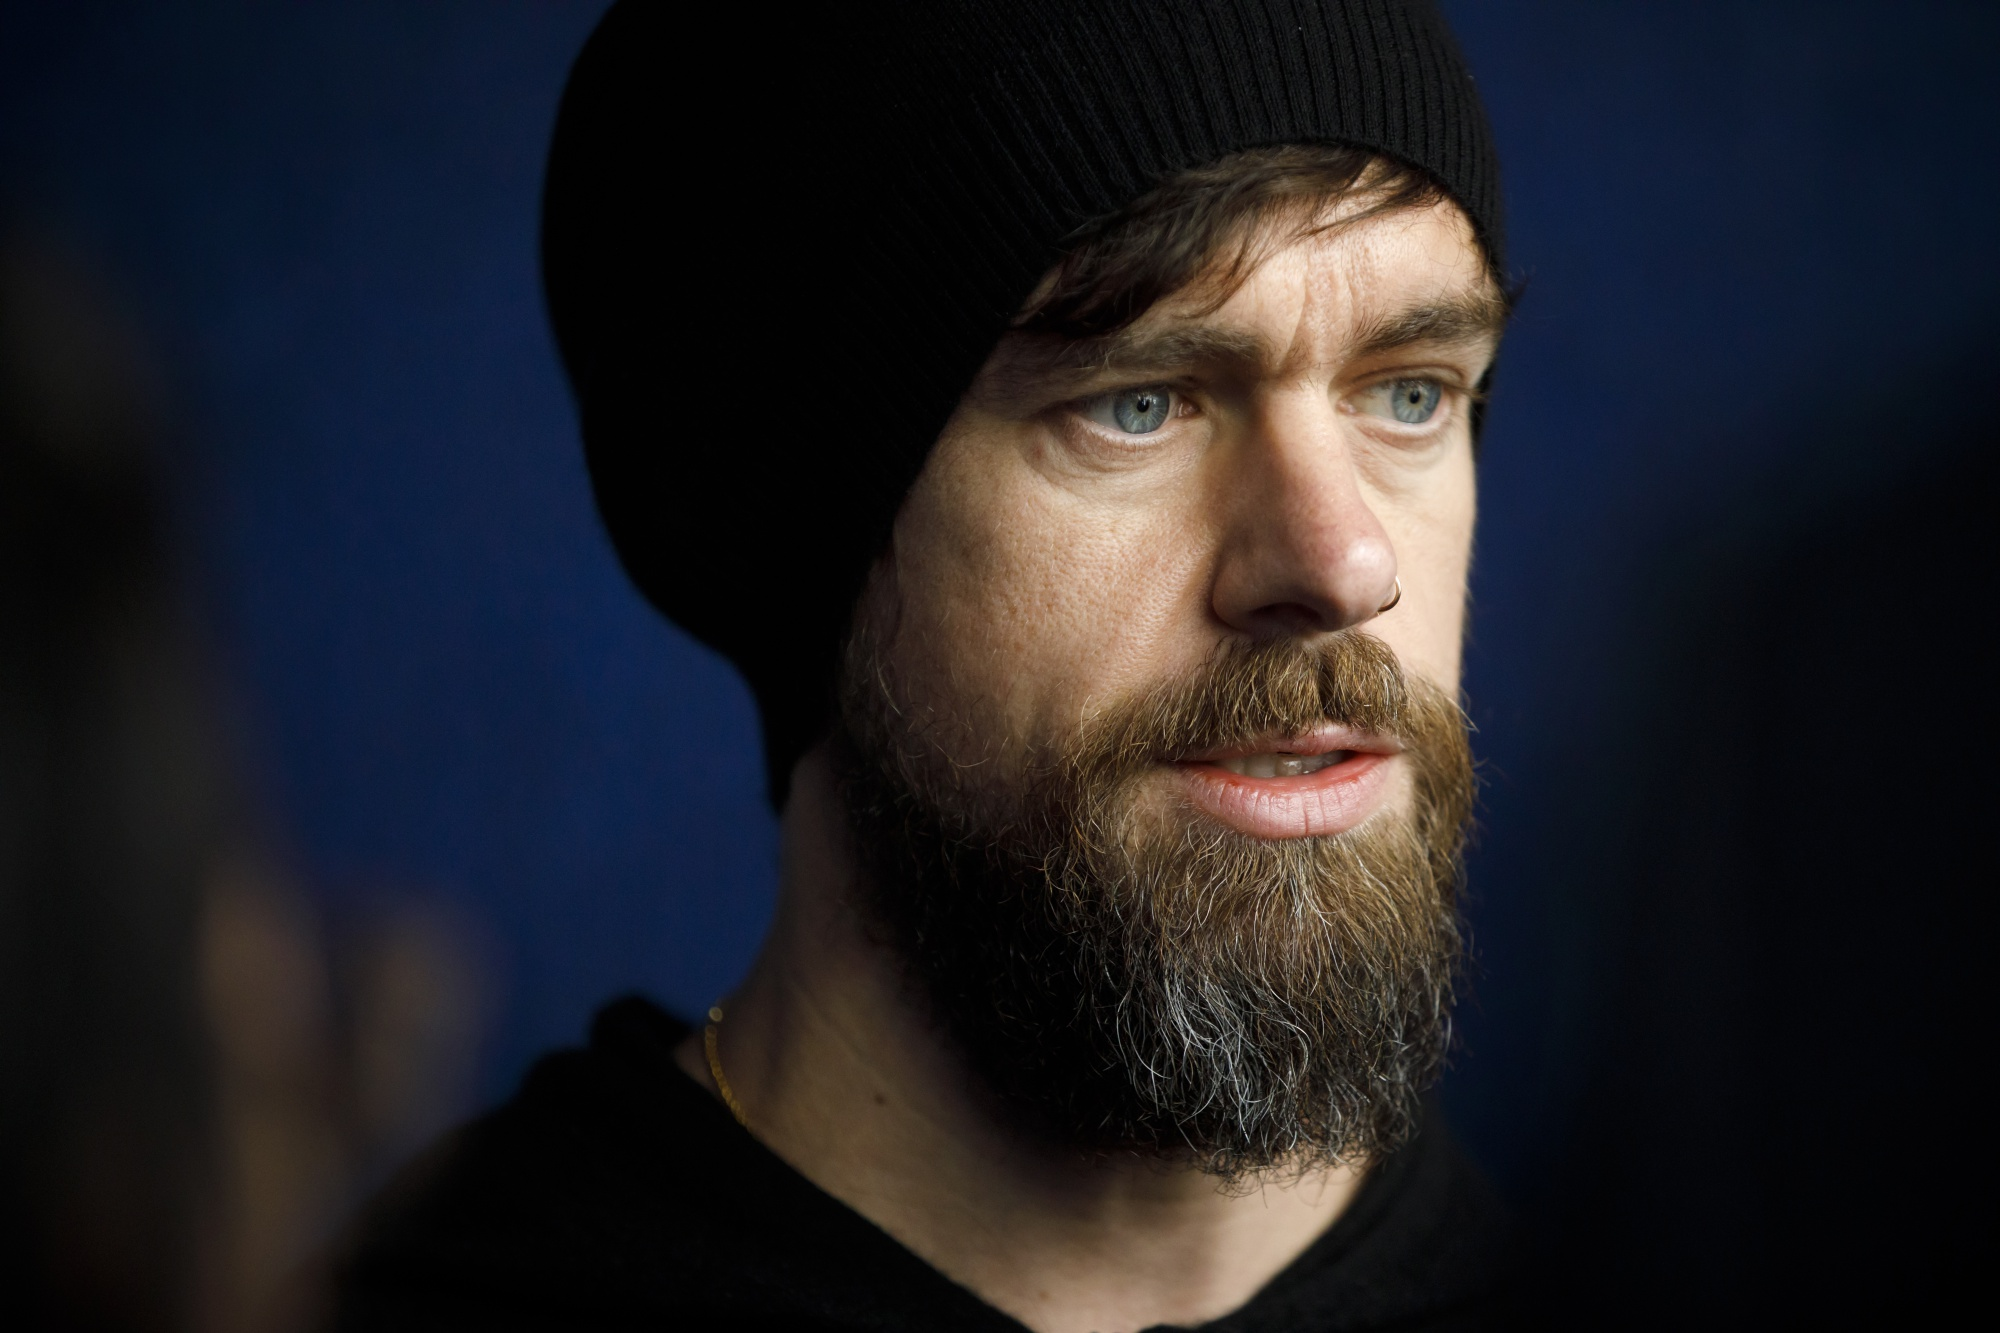 Twitter Ceo Jack Dorsey Gives Talk At Apple Headquarters Bloomberg